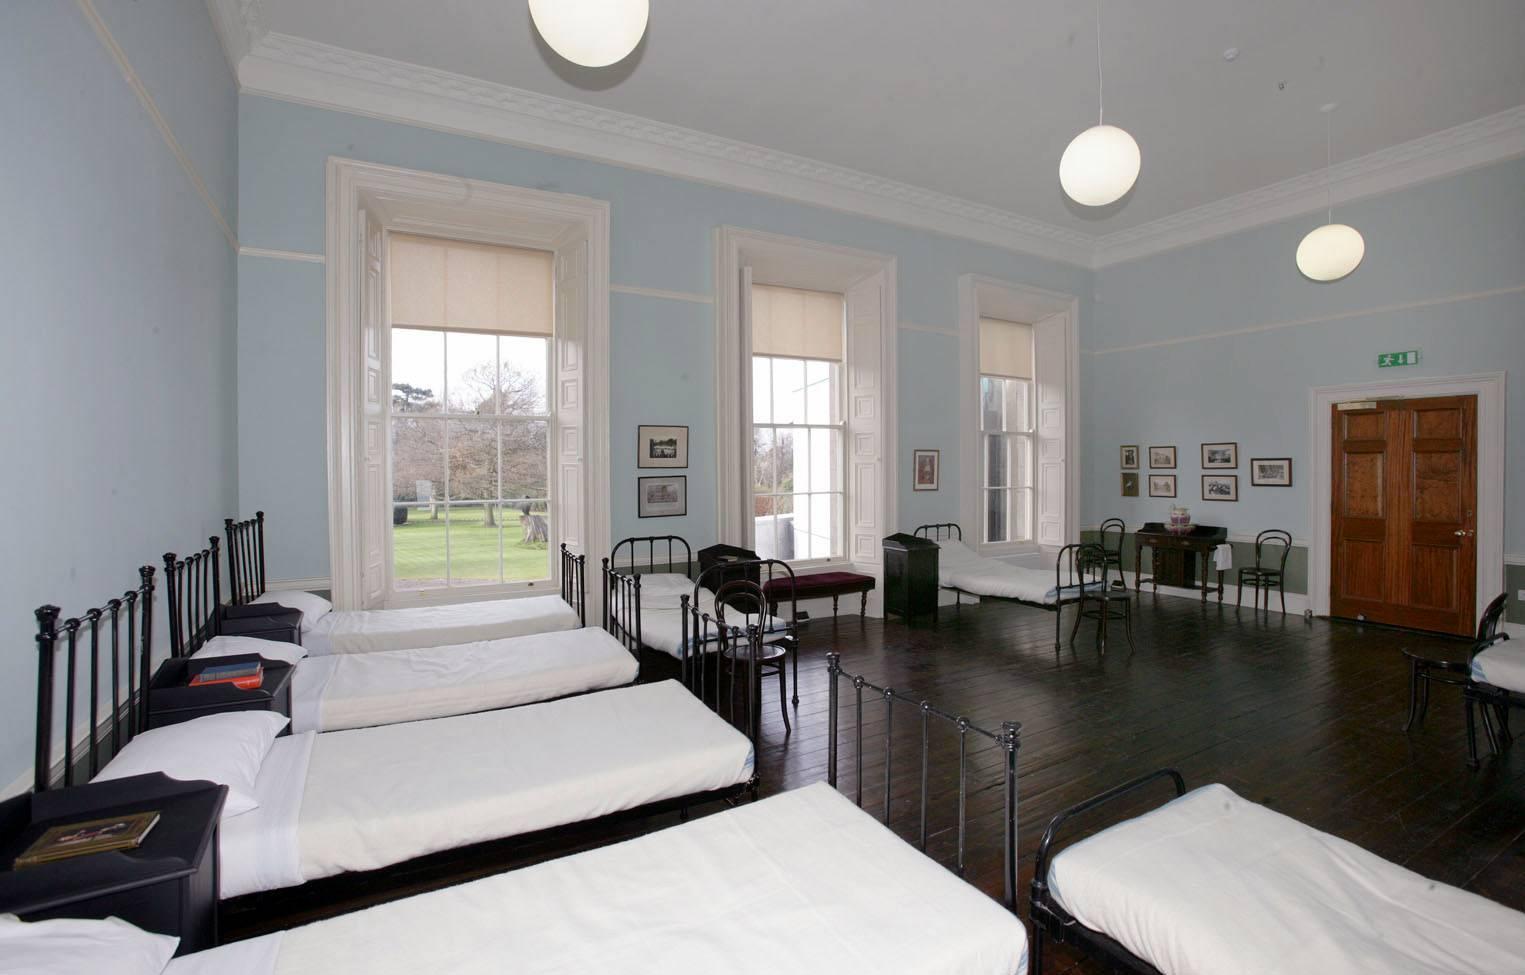 The dormitory at St Enda's. National Monuments Service.